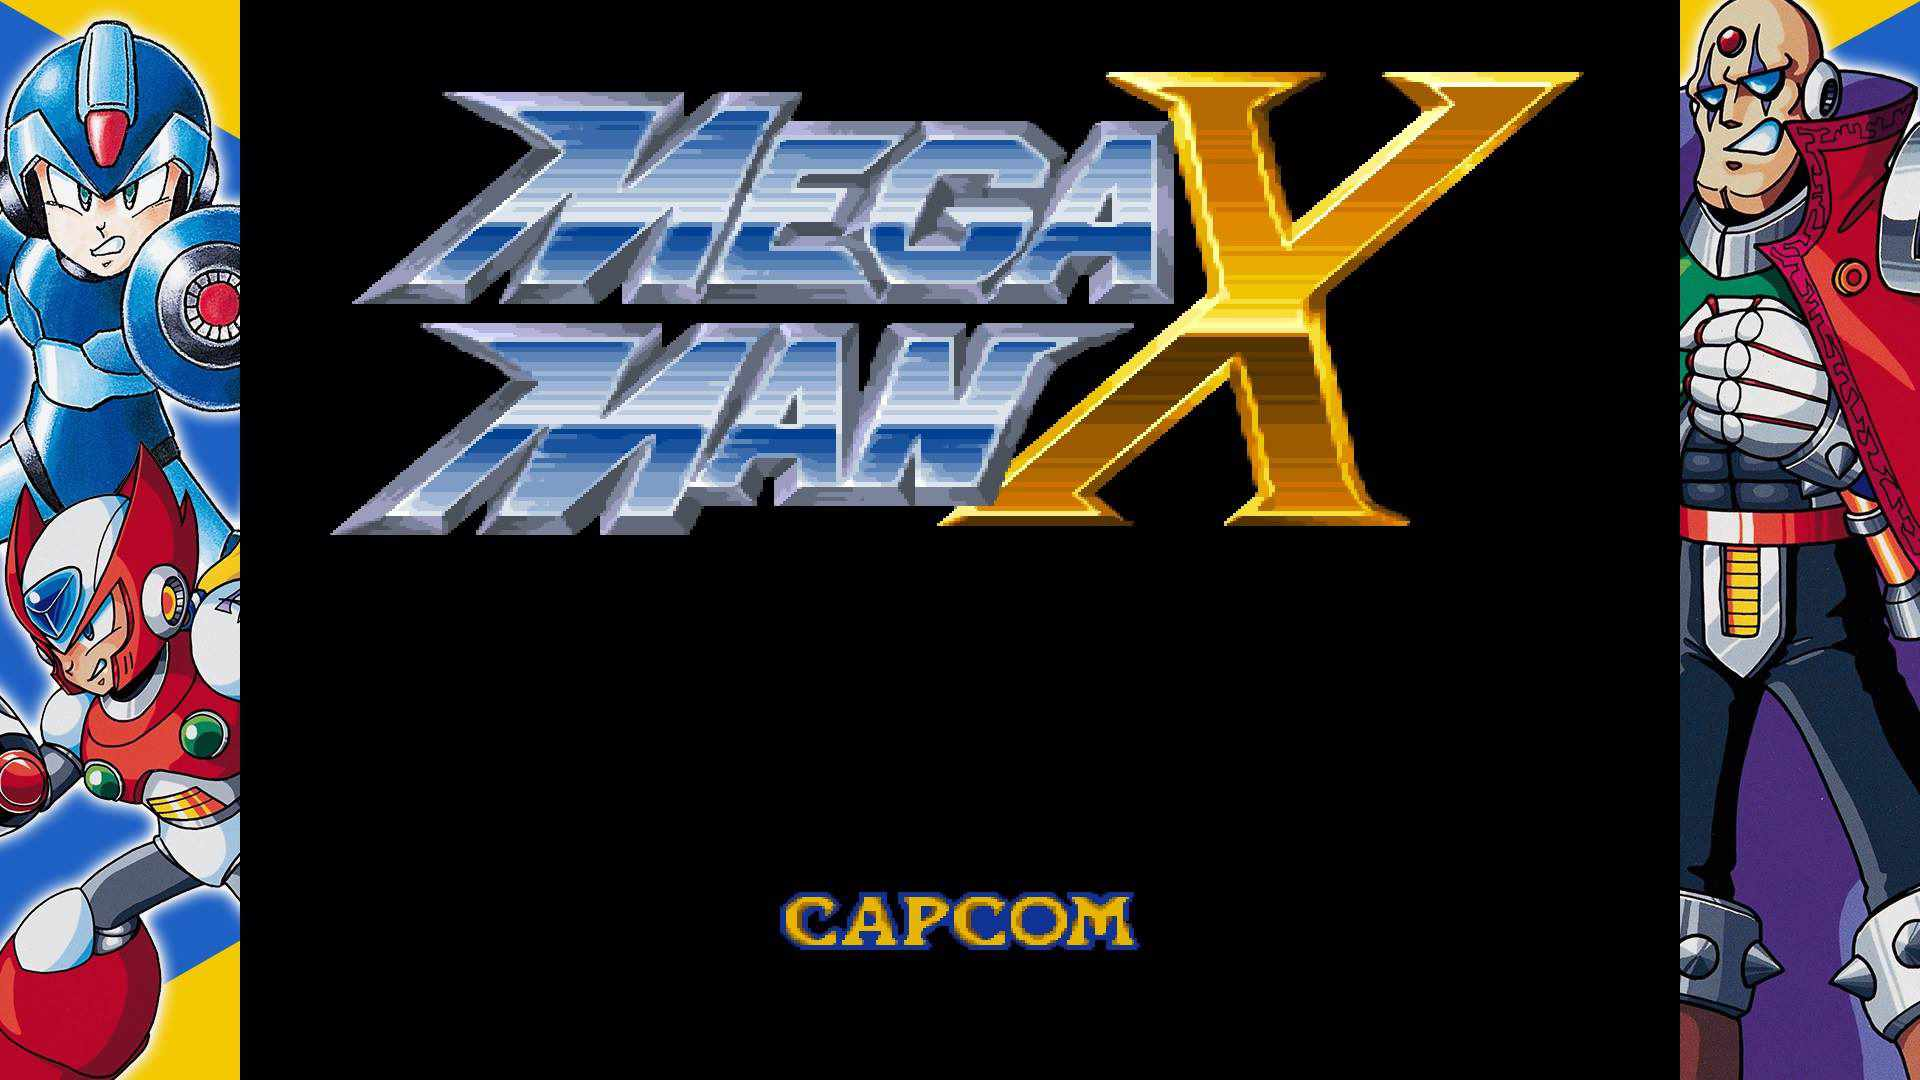 Mega Man X was released for the Super Nintendo Entertainment System in 1993.